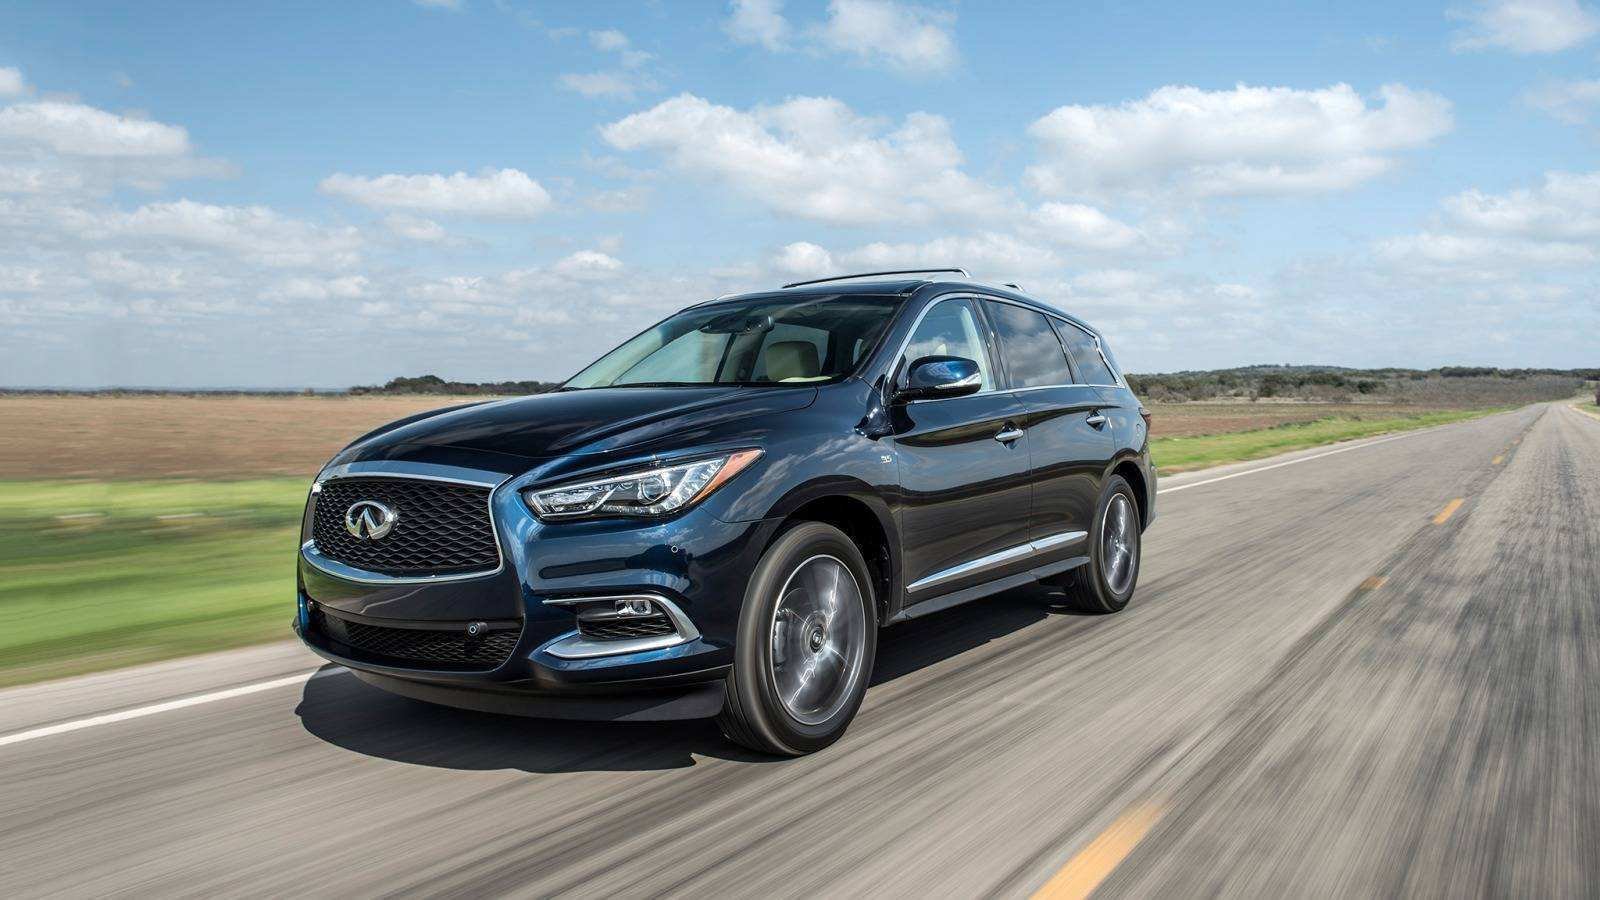 31 All New The Infiniti 2019 Qx60 Release Date Review Spesification for The Infiniti 2019 Qx60 Release Date Review